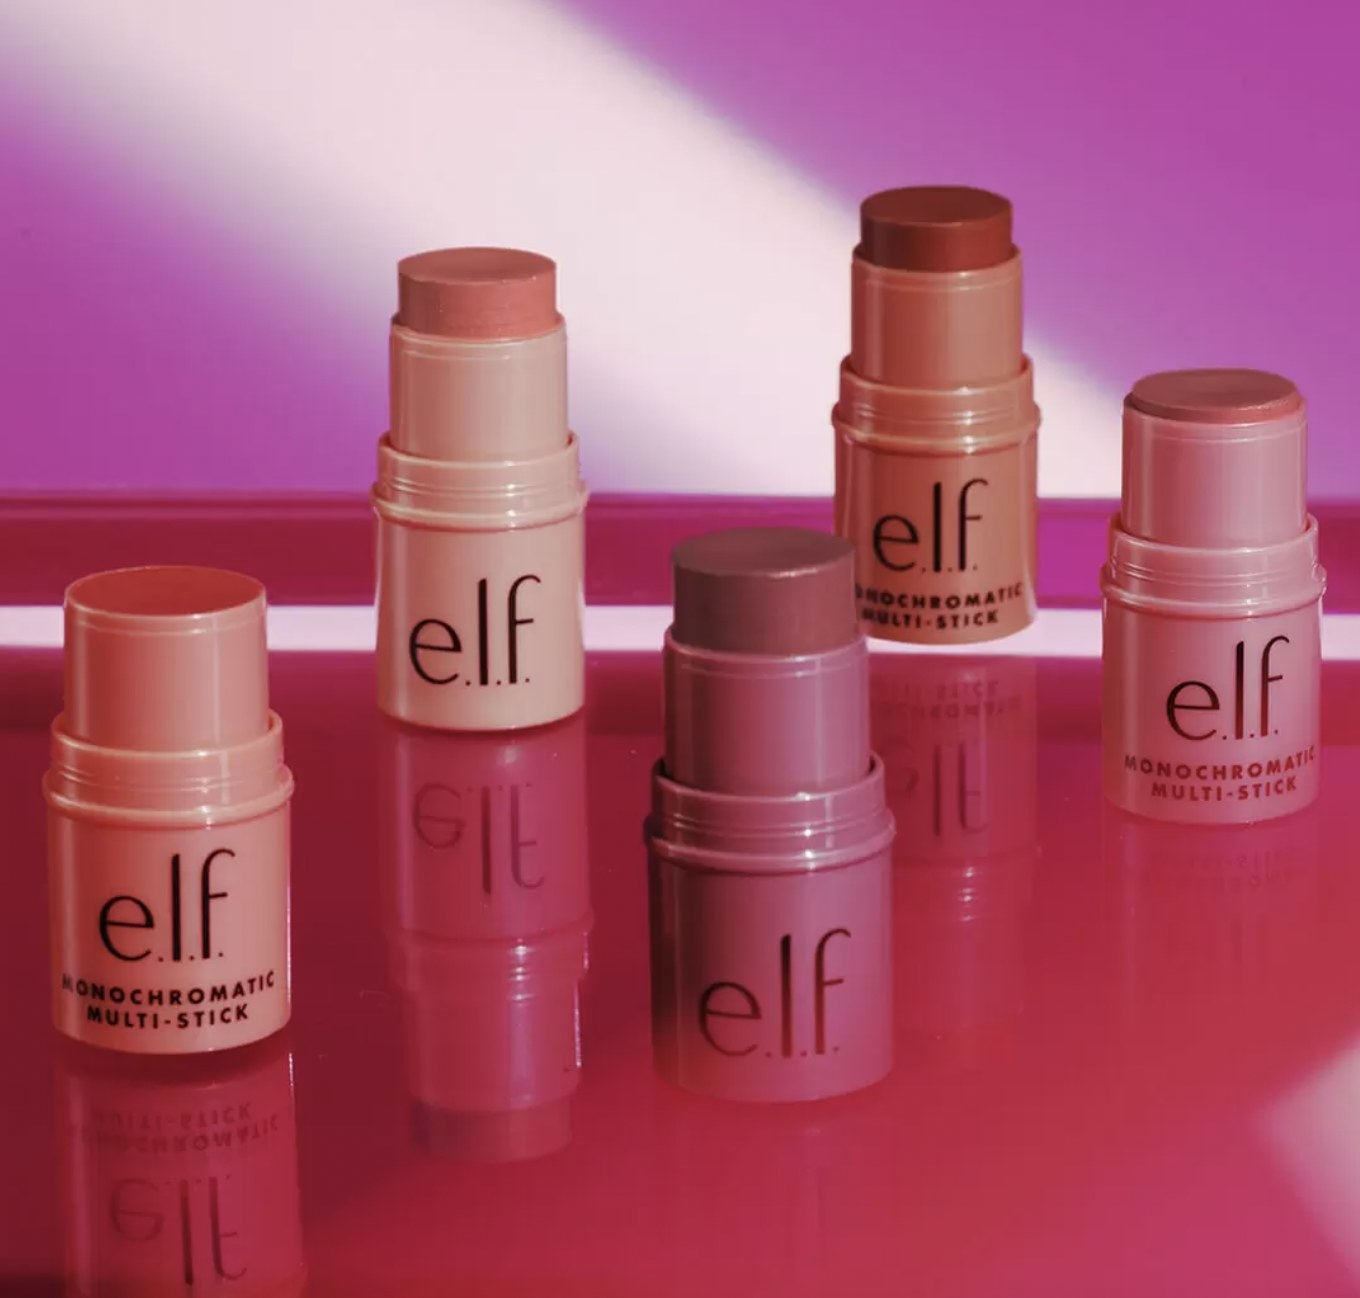 A set of multi stick makeup products